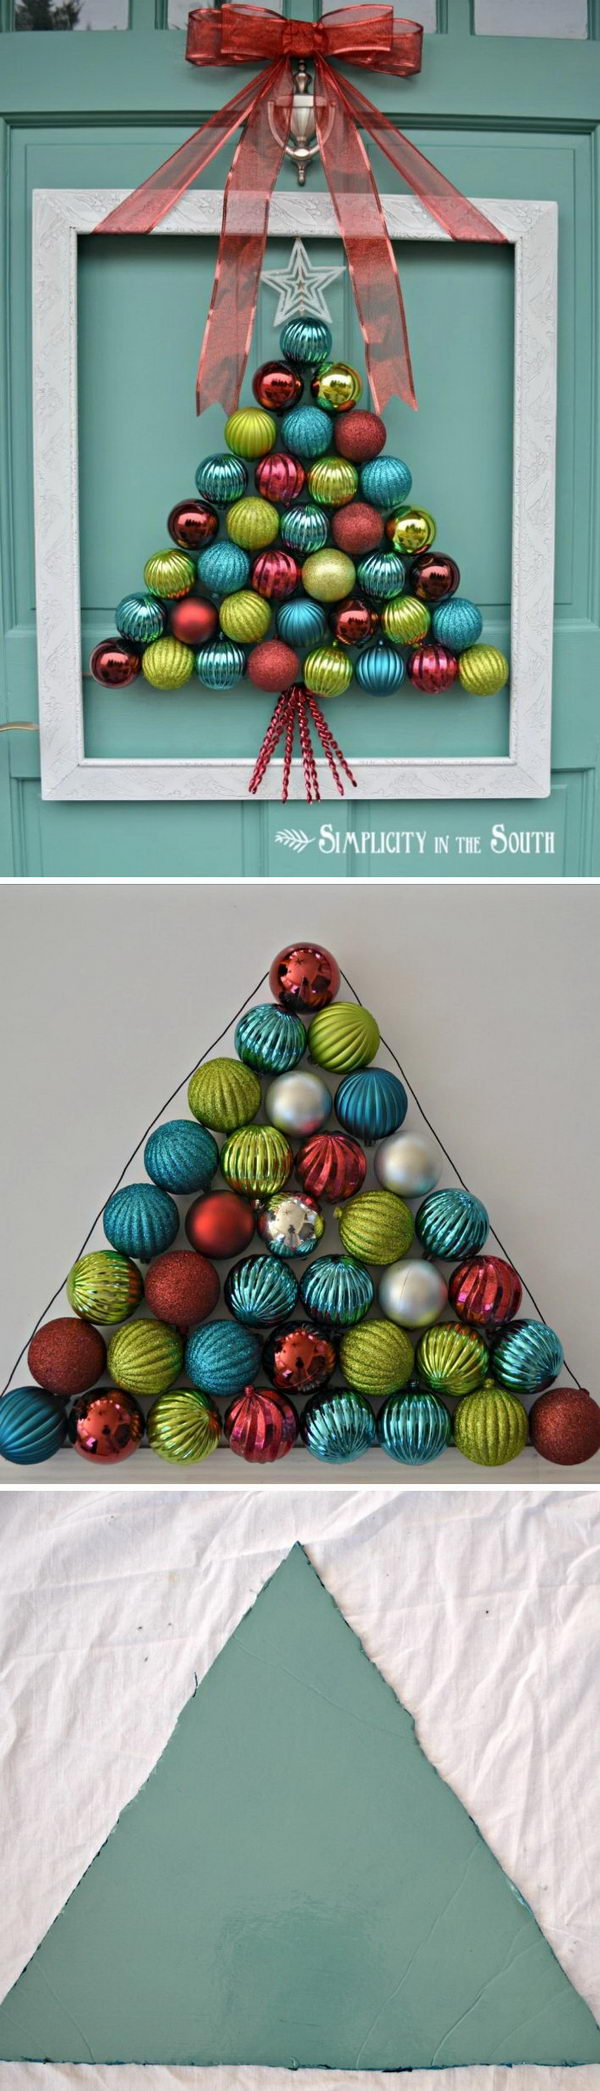 Framed Christmas Tree Ornament Wreath.